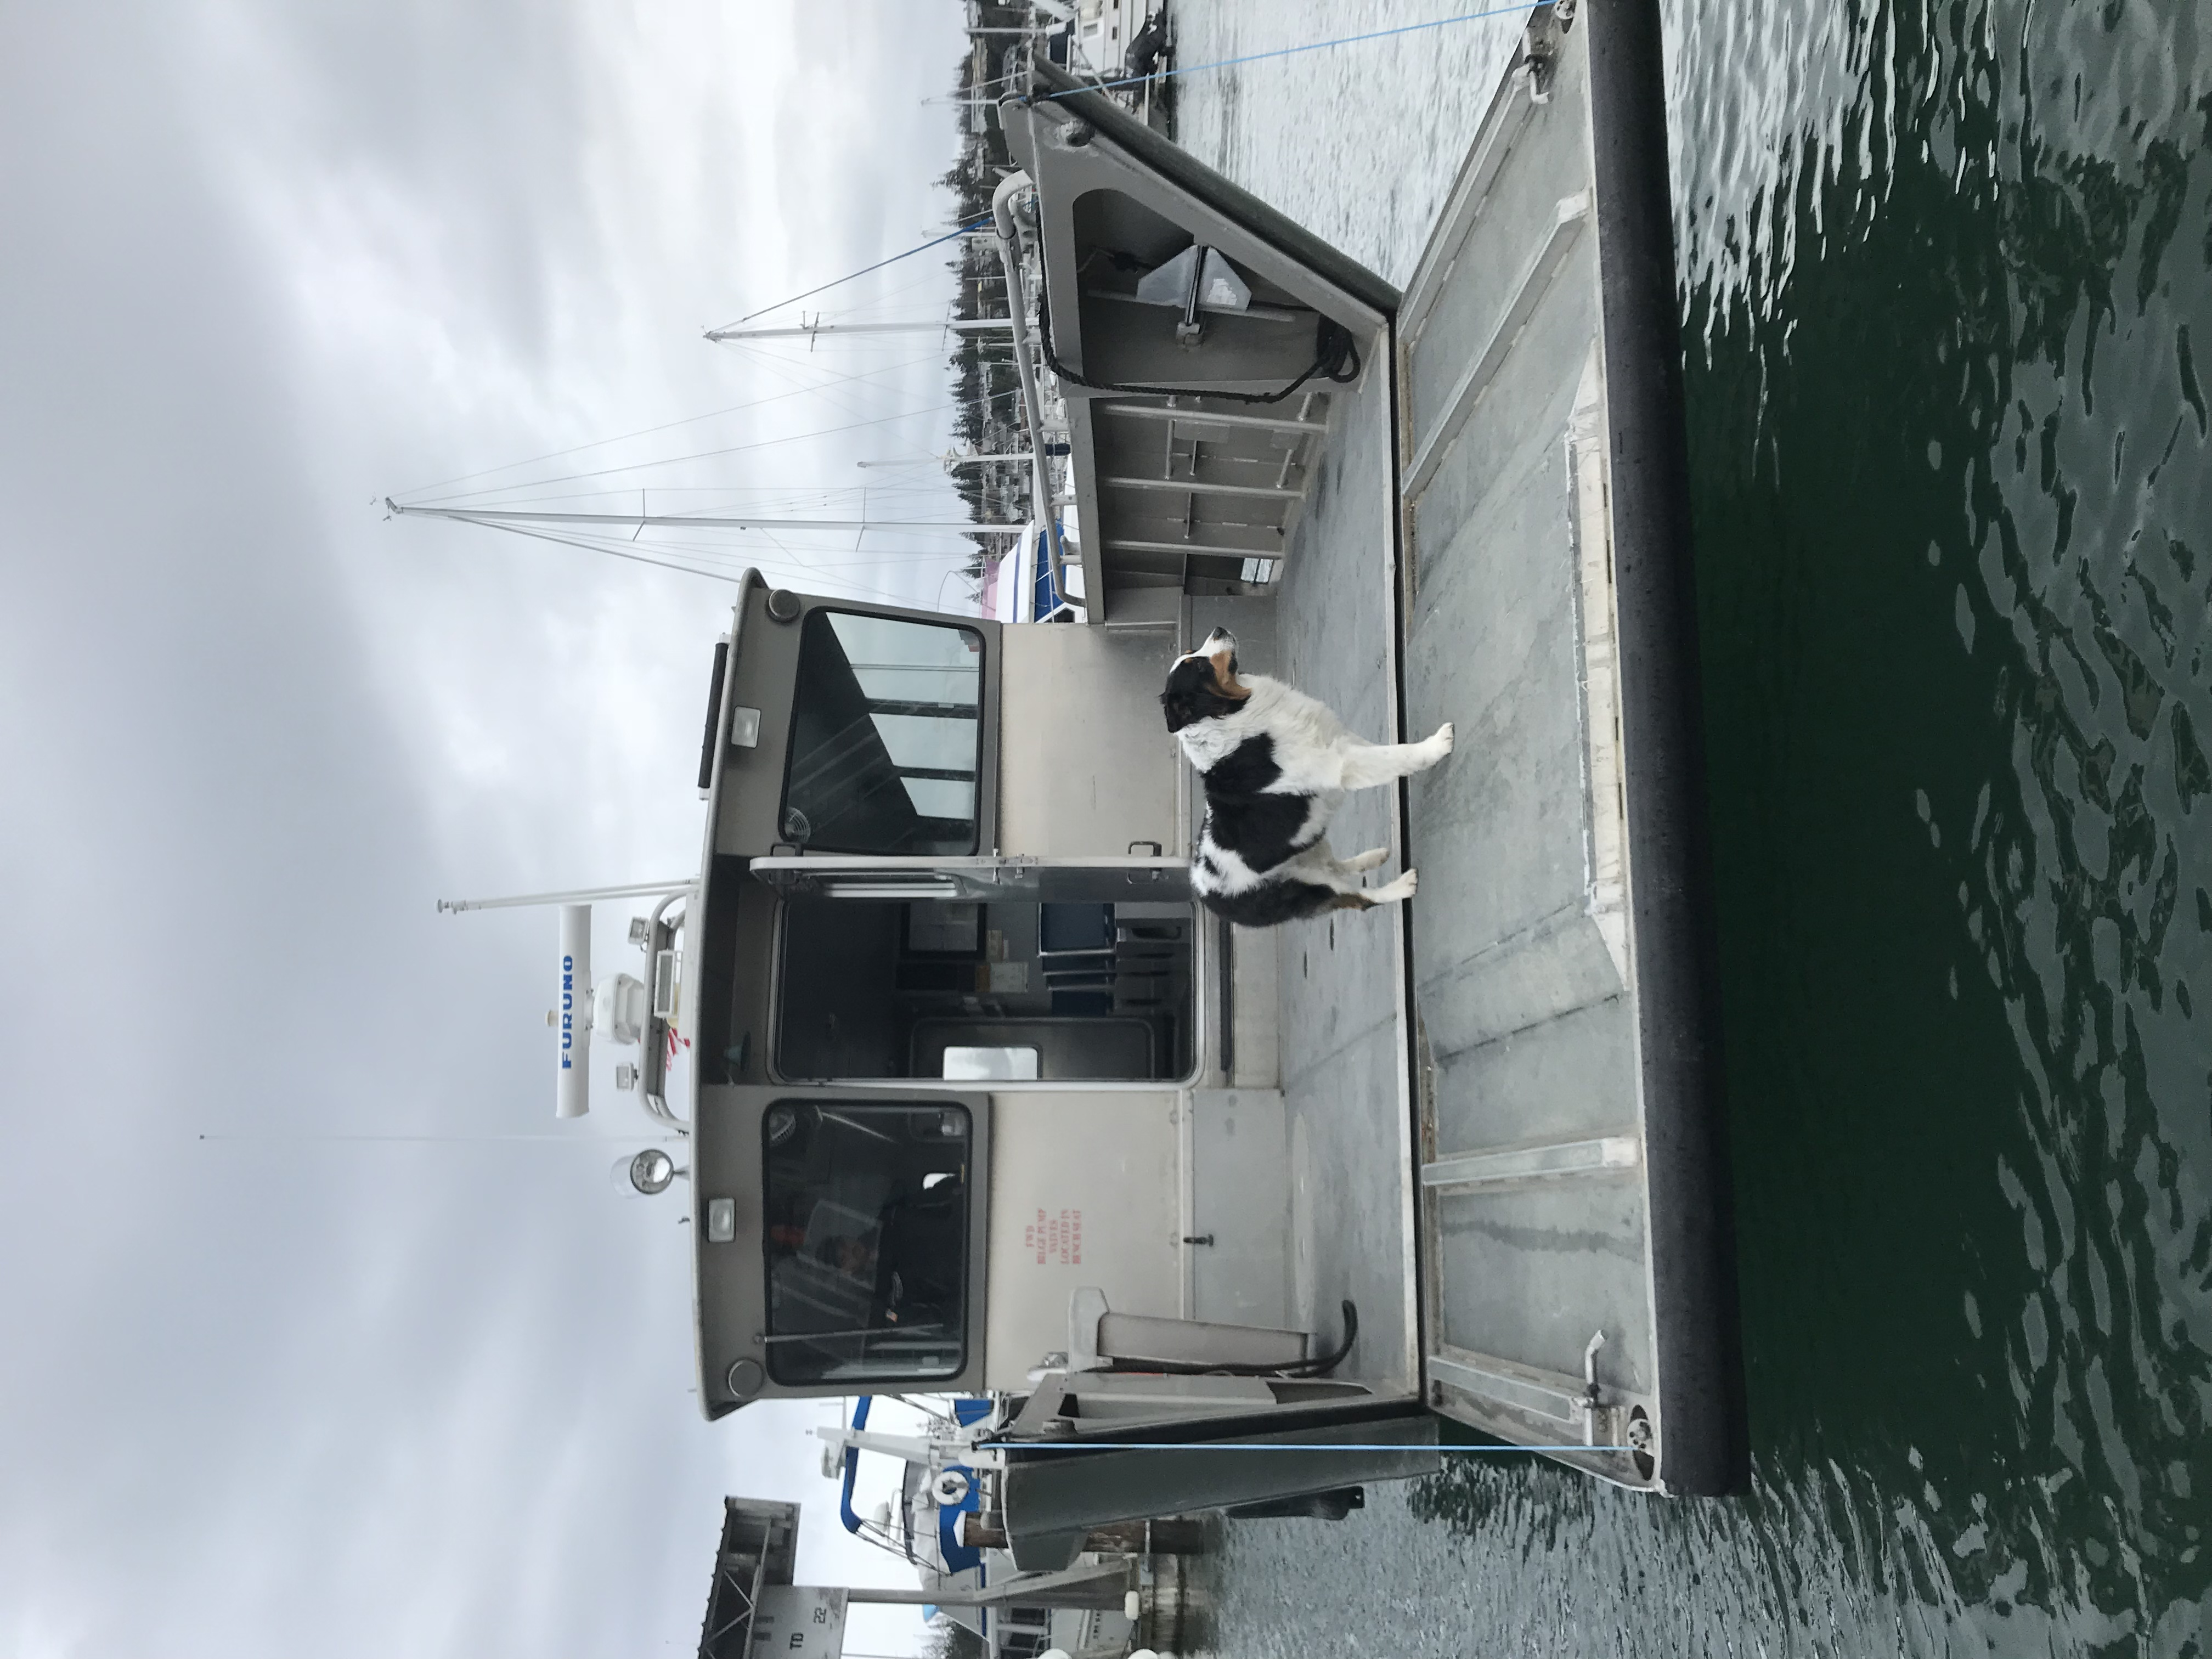 Bow in to a dock